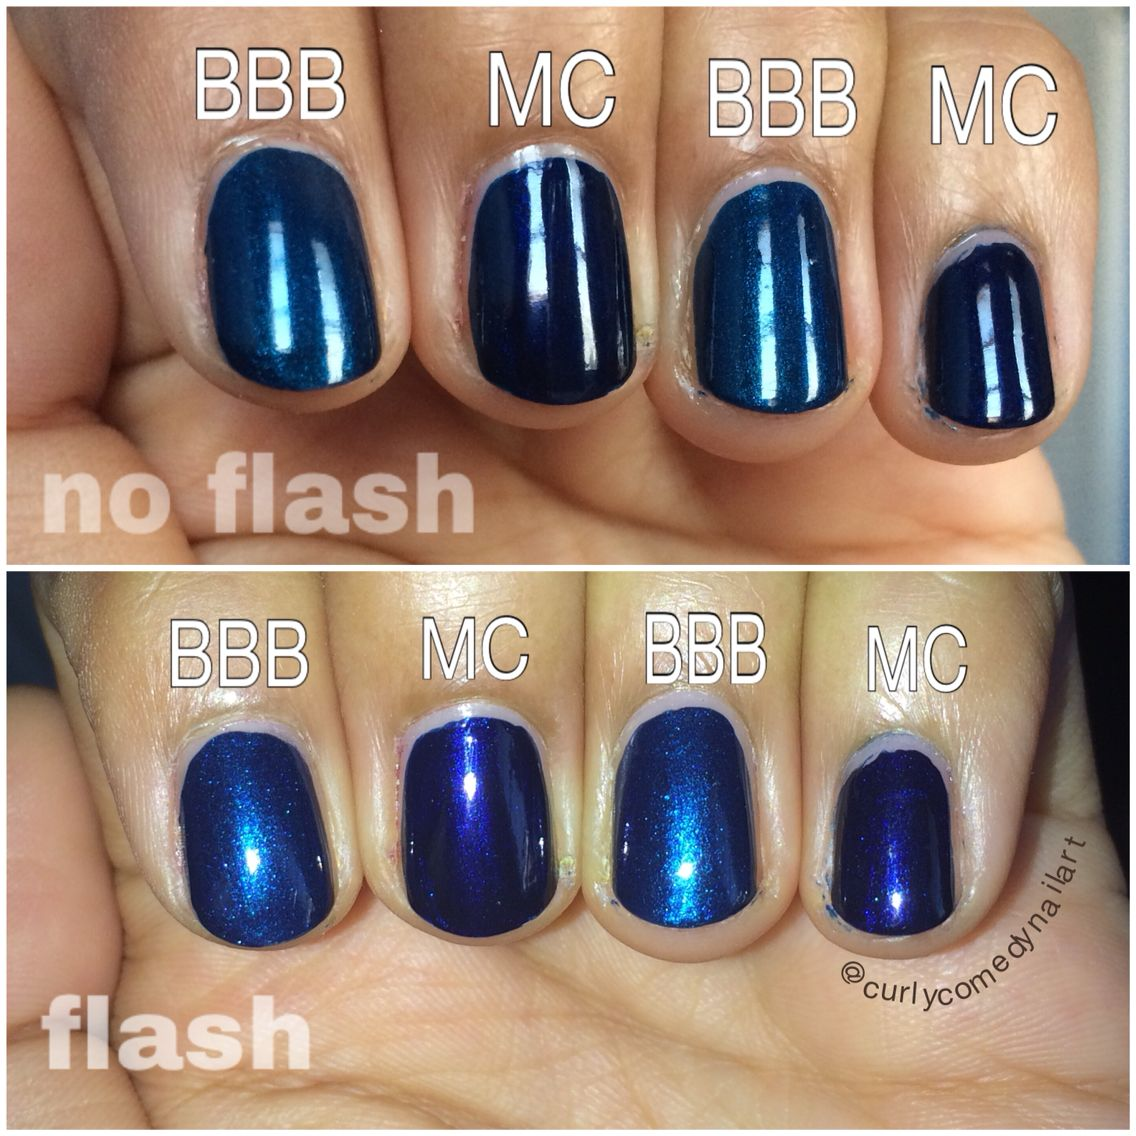 Essie Bell Bottom Blues vs Essie Midnight Cami